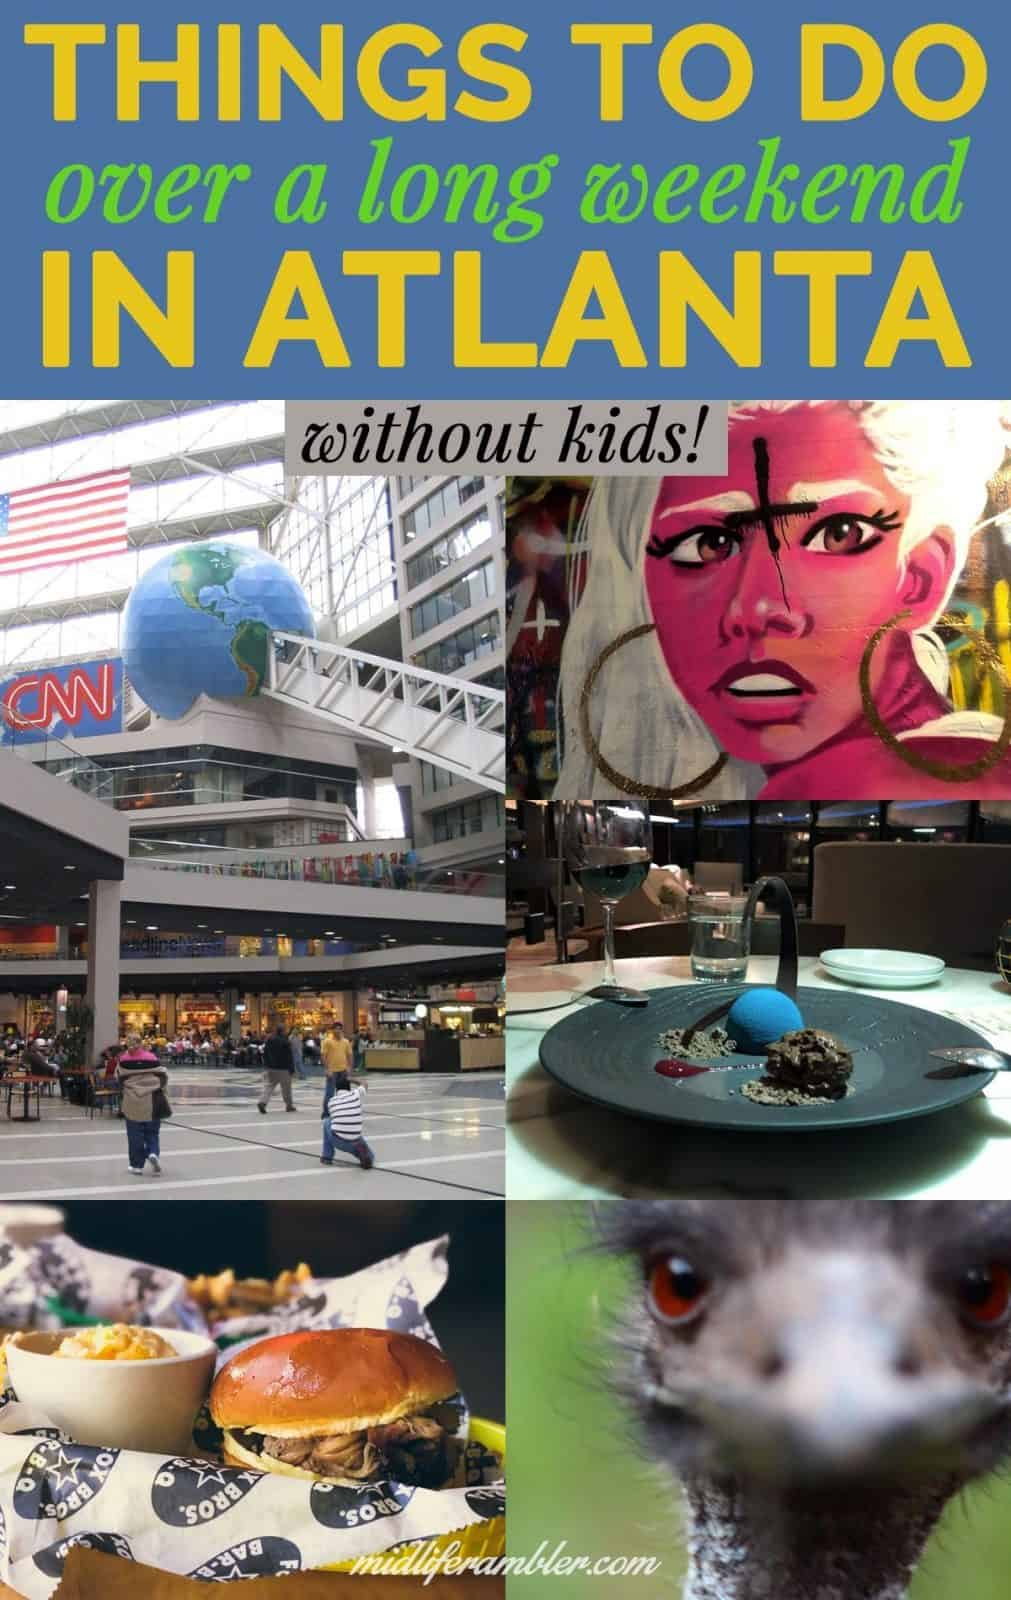 The Empty Nester's Guide to a Long Weekend in Atlanta 5